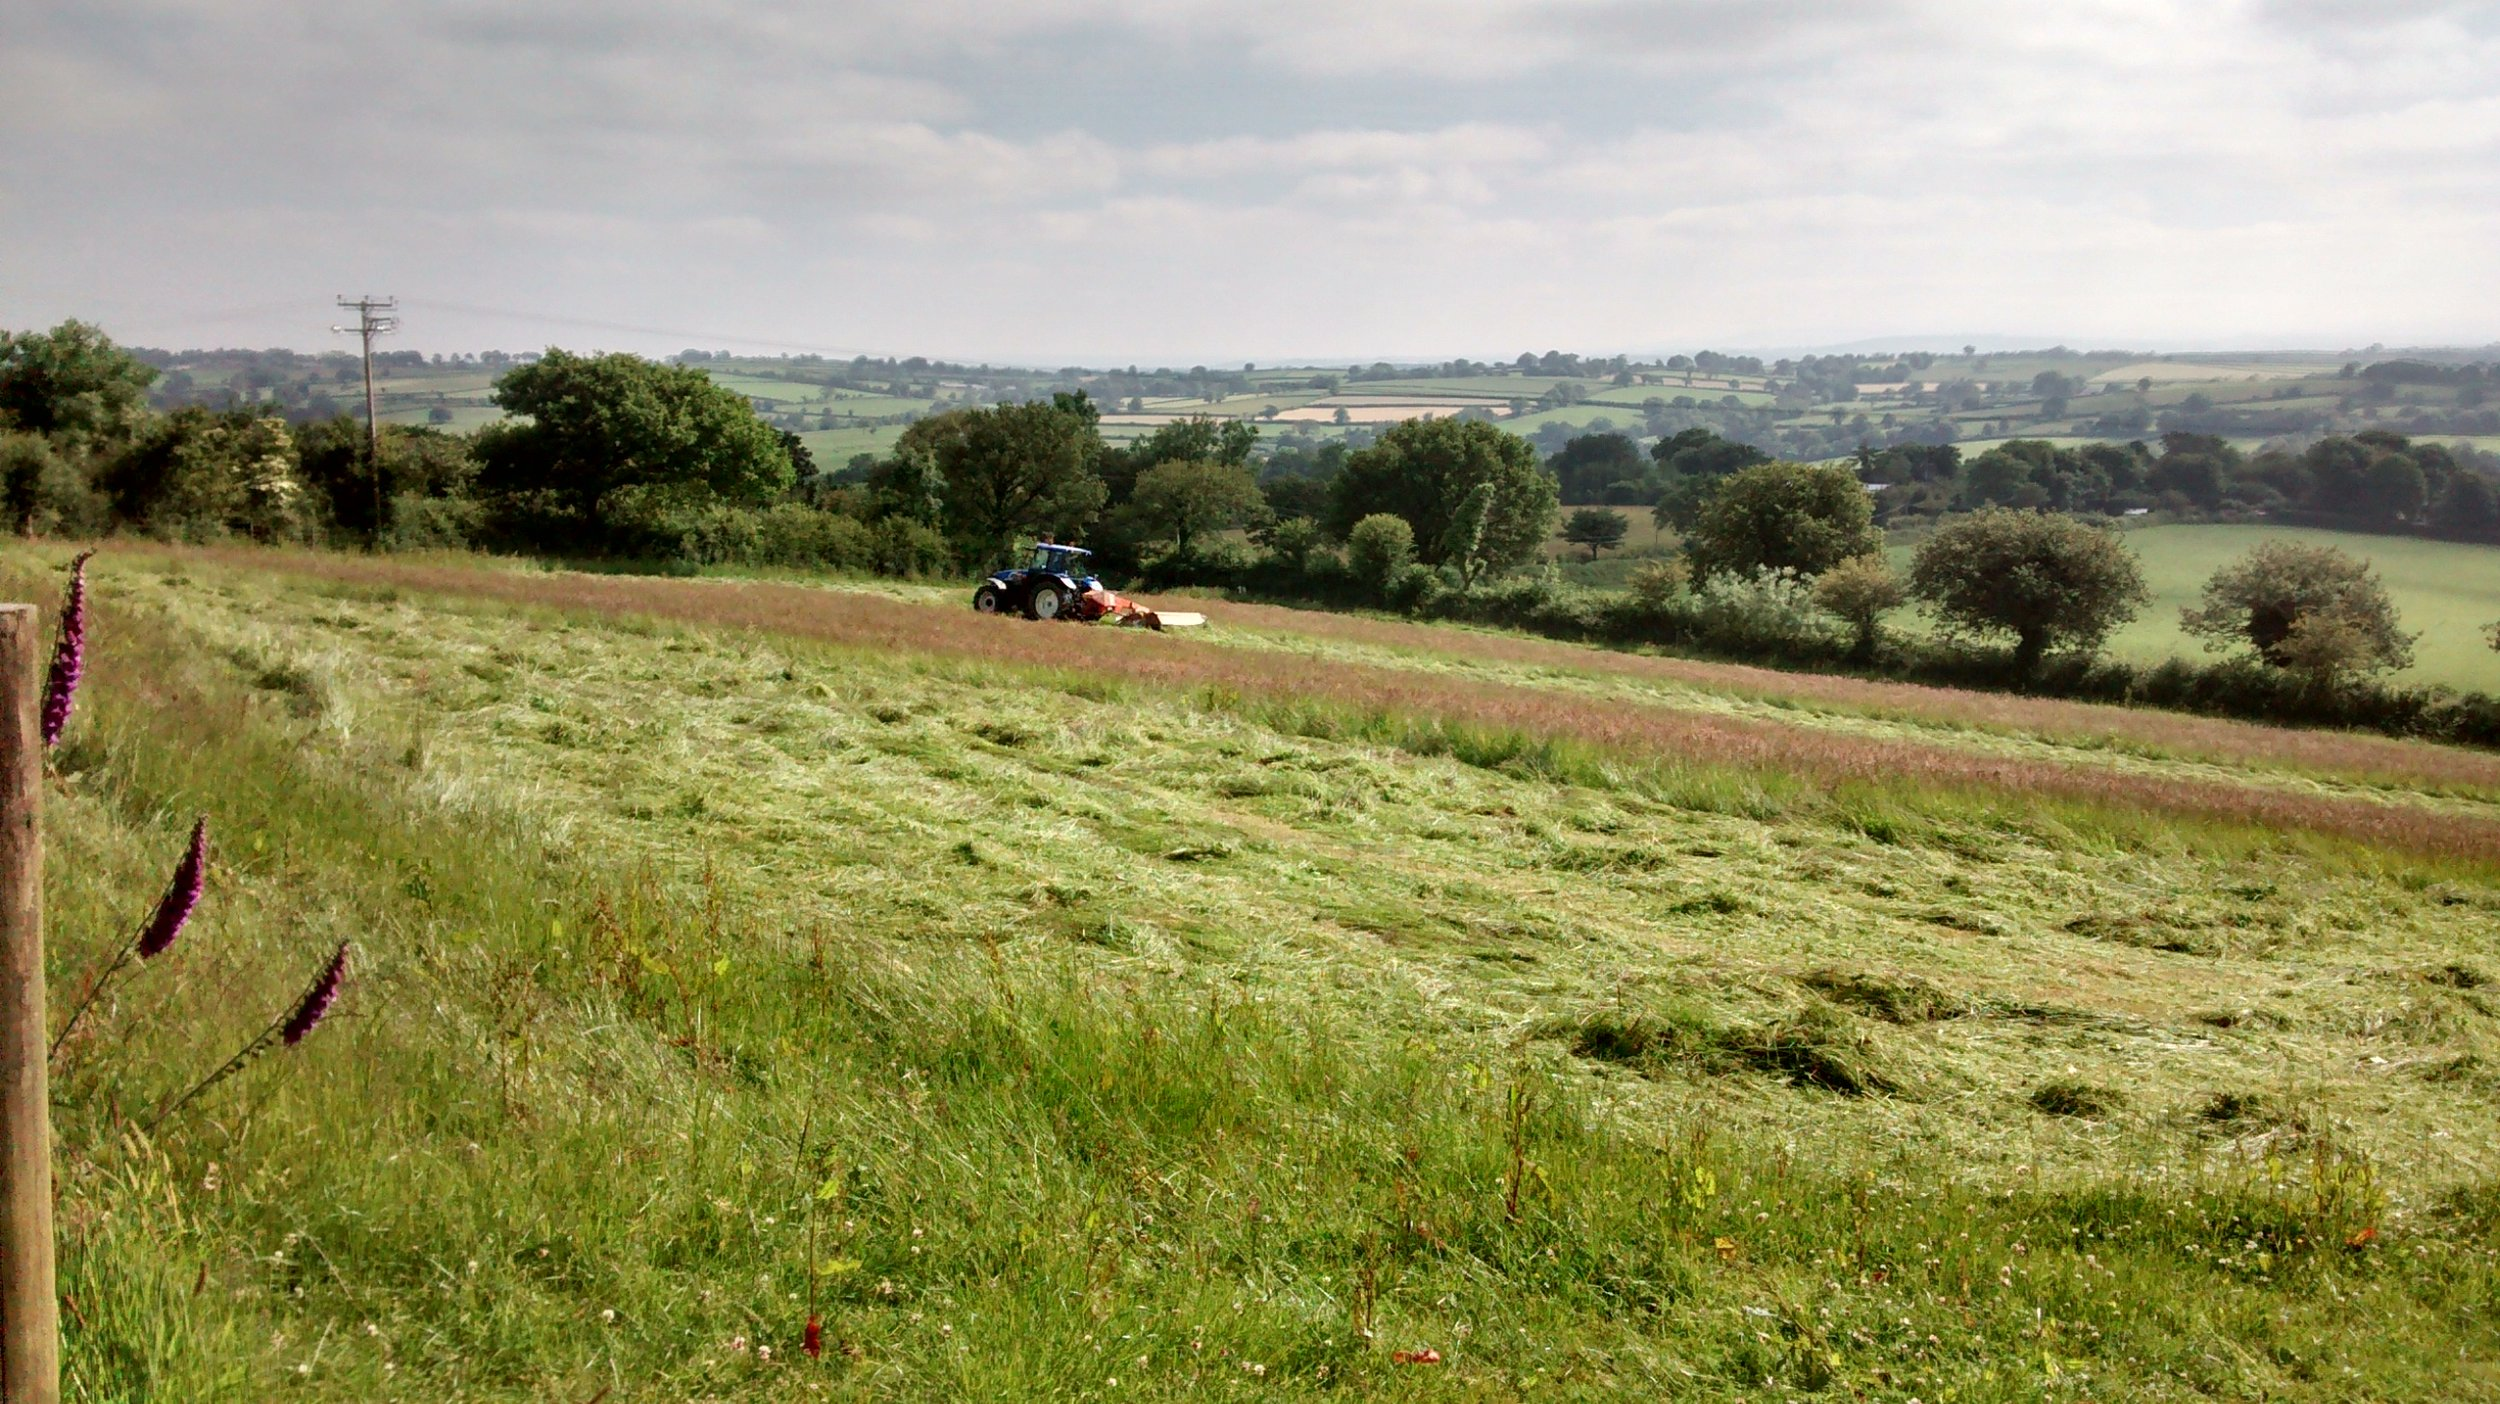 Mowing Grass for Silage